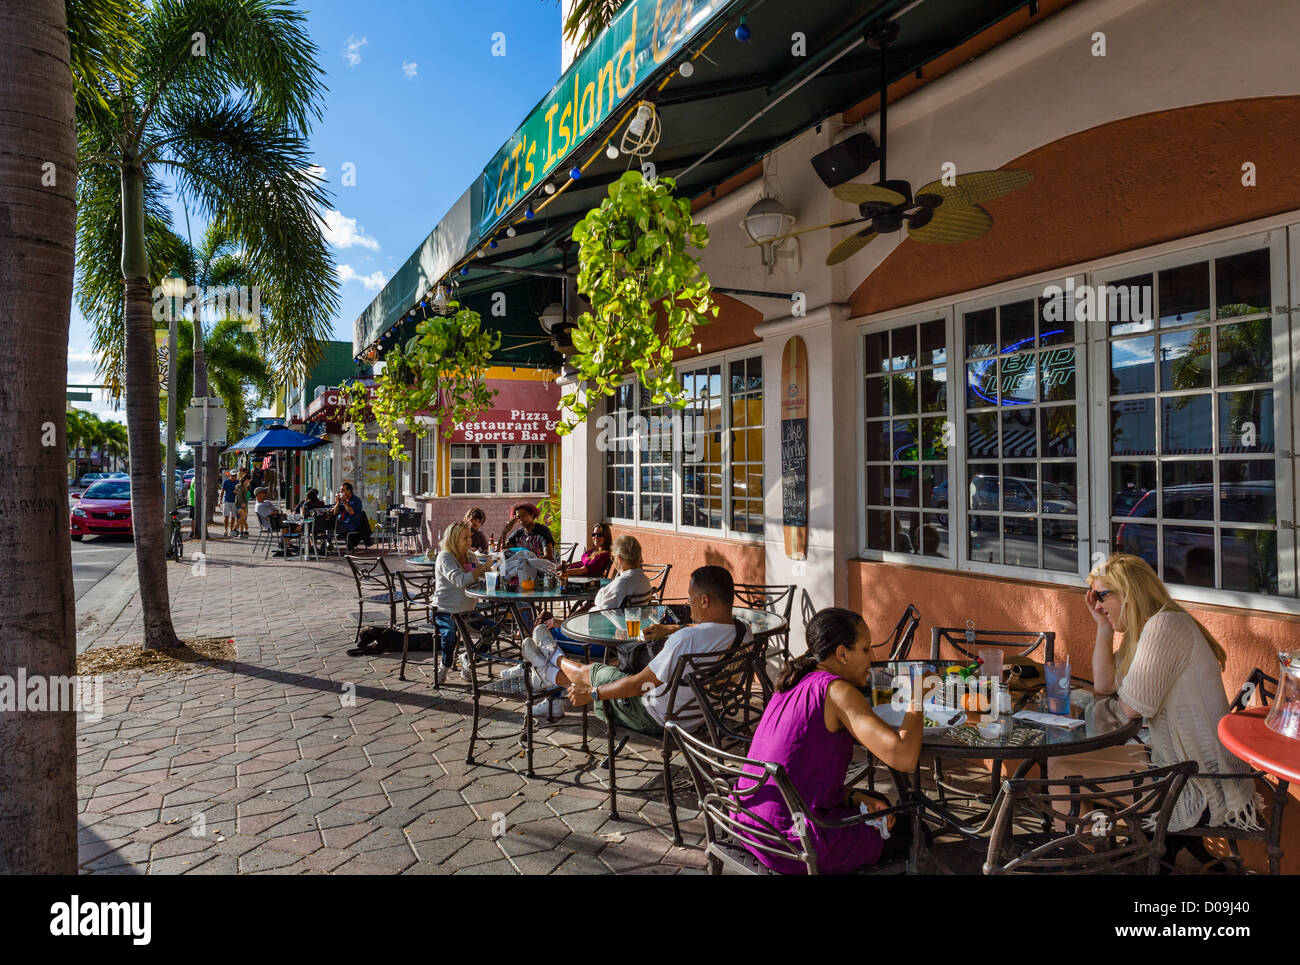 Restaurant trottoir sur l'Avenue du Lac au centre-ville historique de Lake Worth, Treasure Coast, Florida, USA Photo Stock